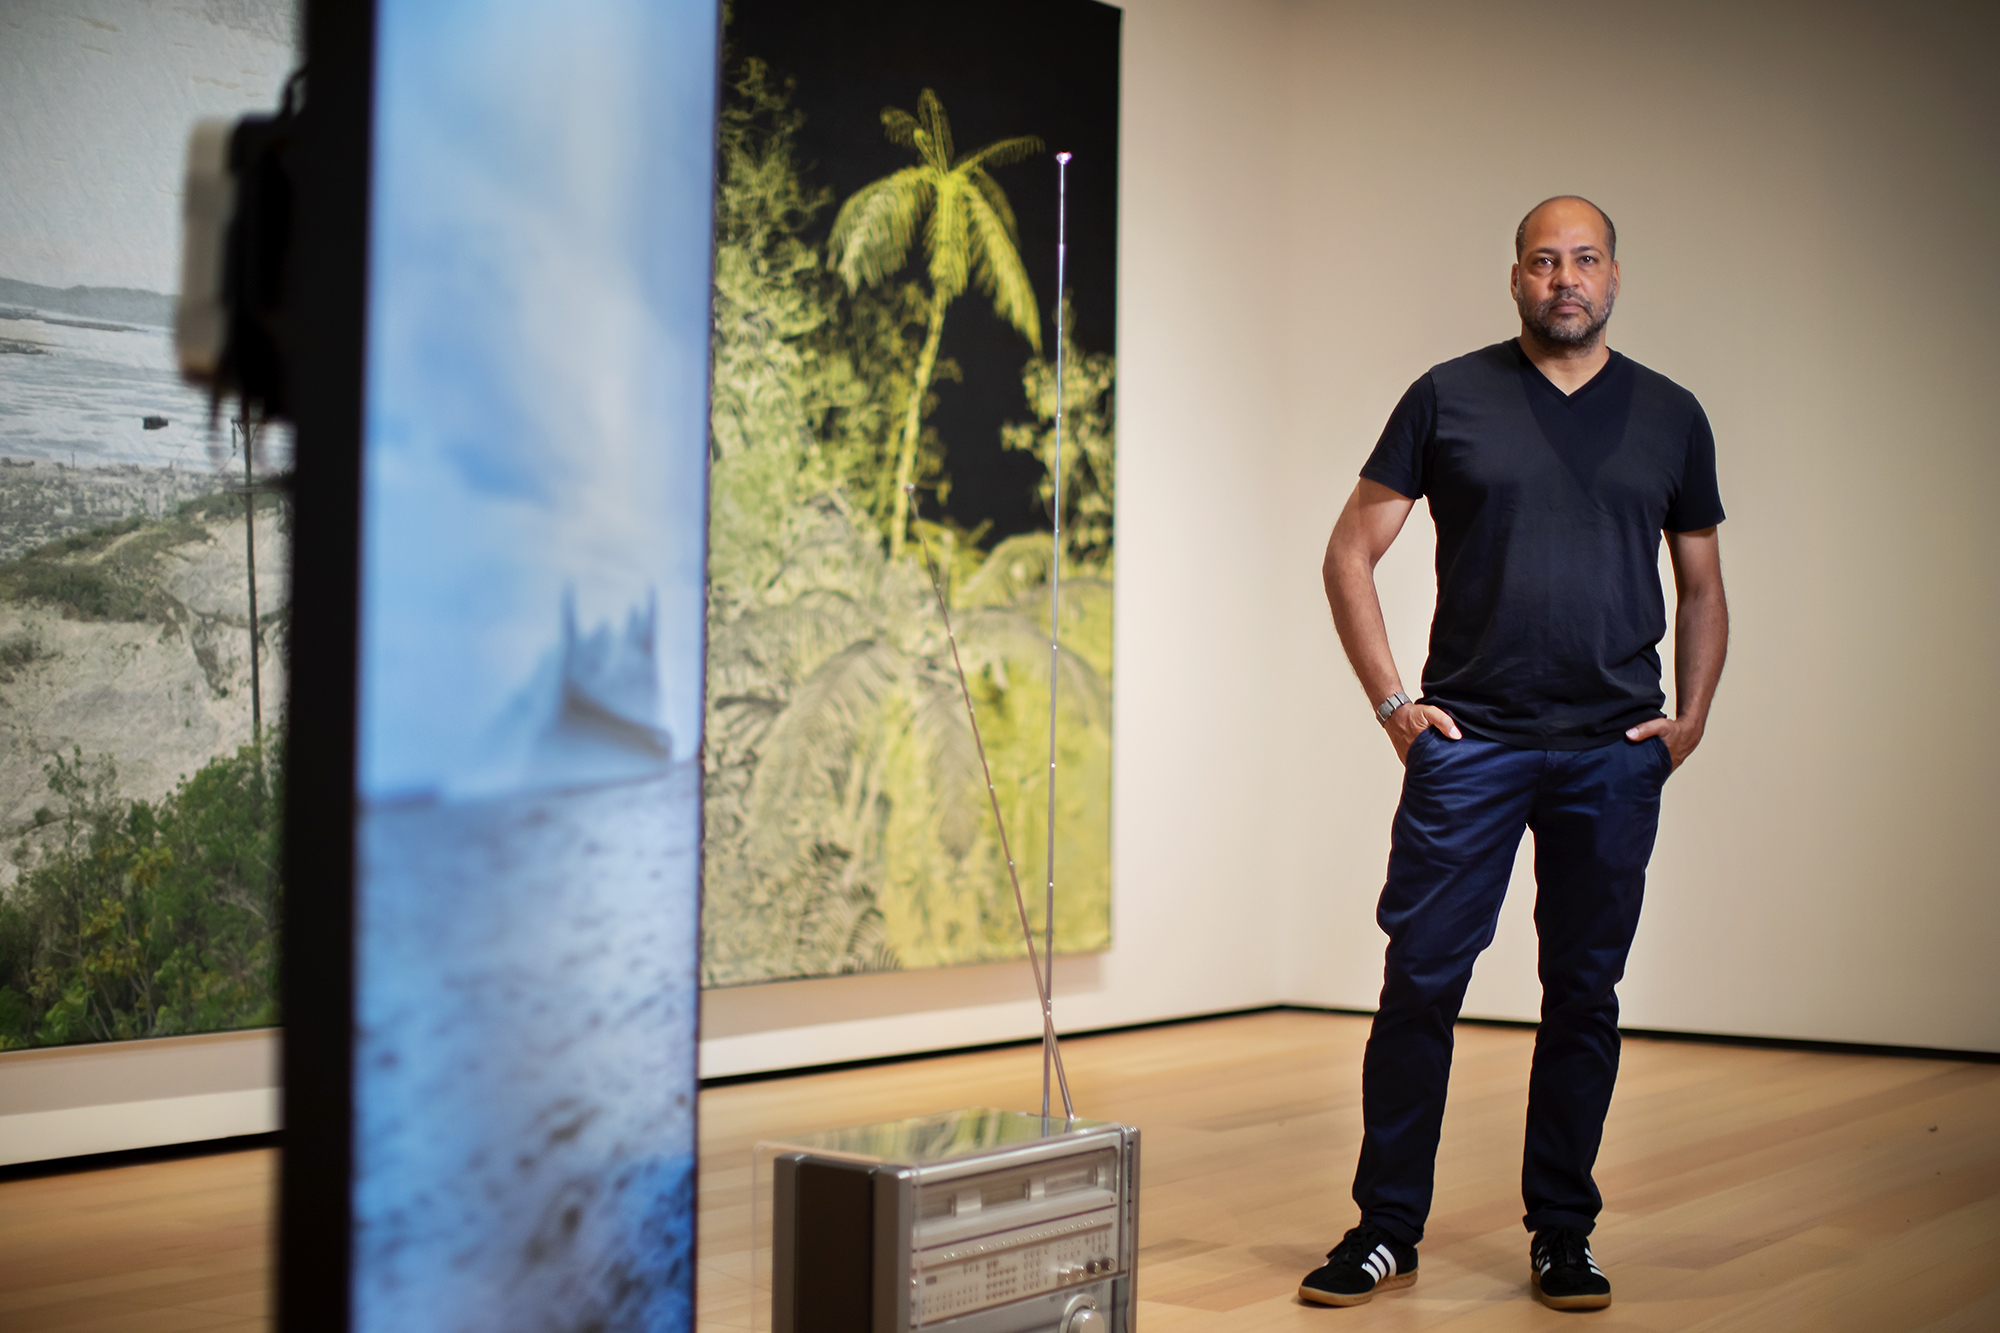 Artist standing in museum gallery with his artwork installation